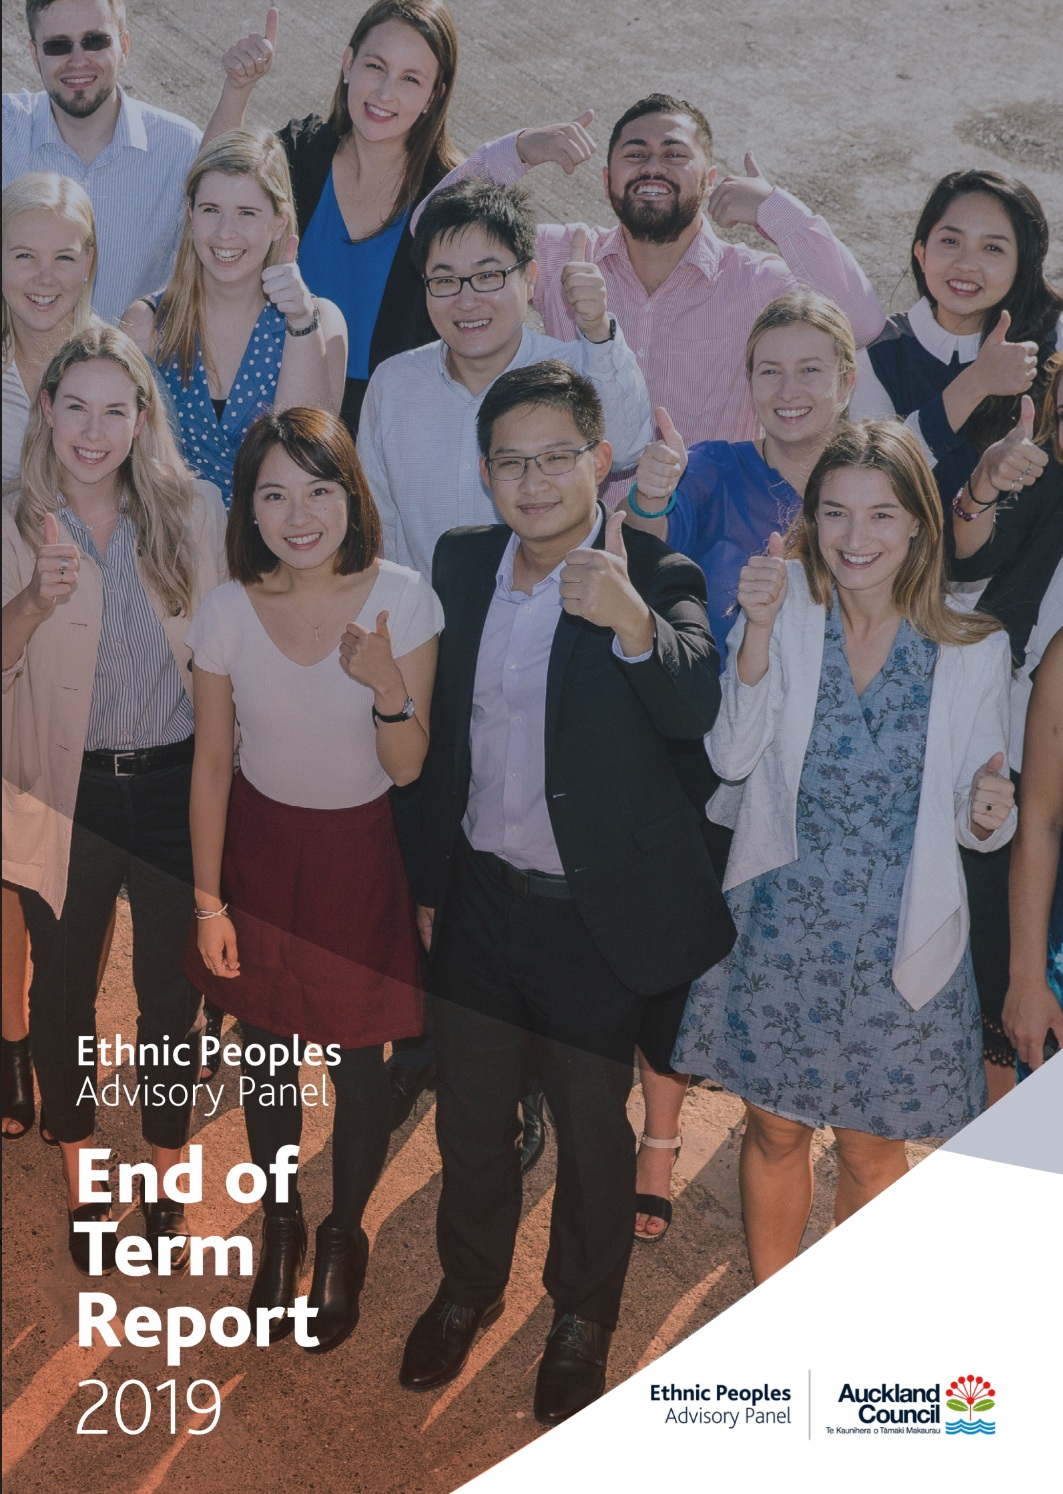 End of Term Report - Ethnic People's Advisory PanelEnd of Term Report 2019